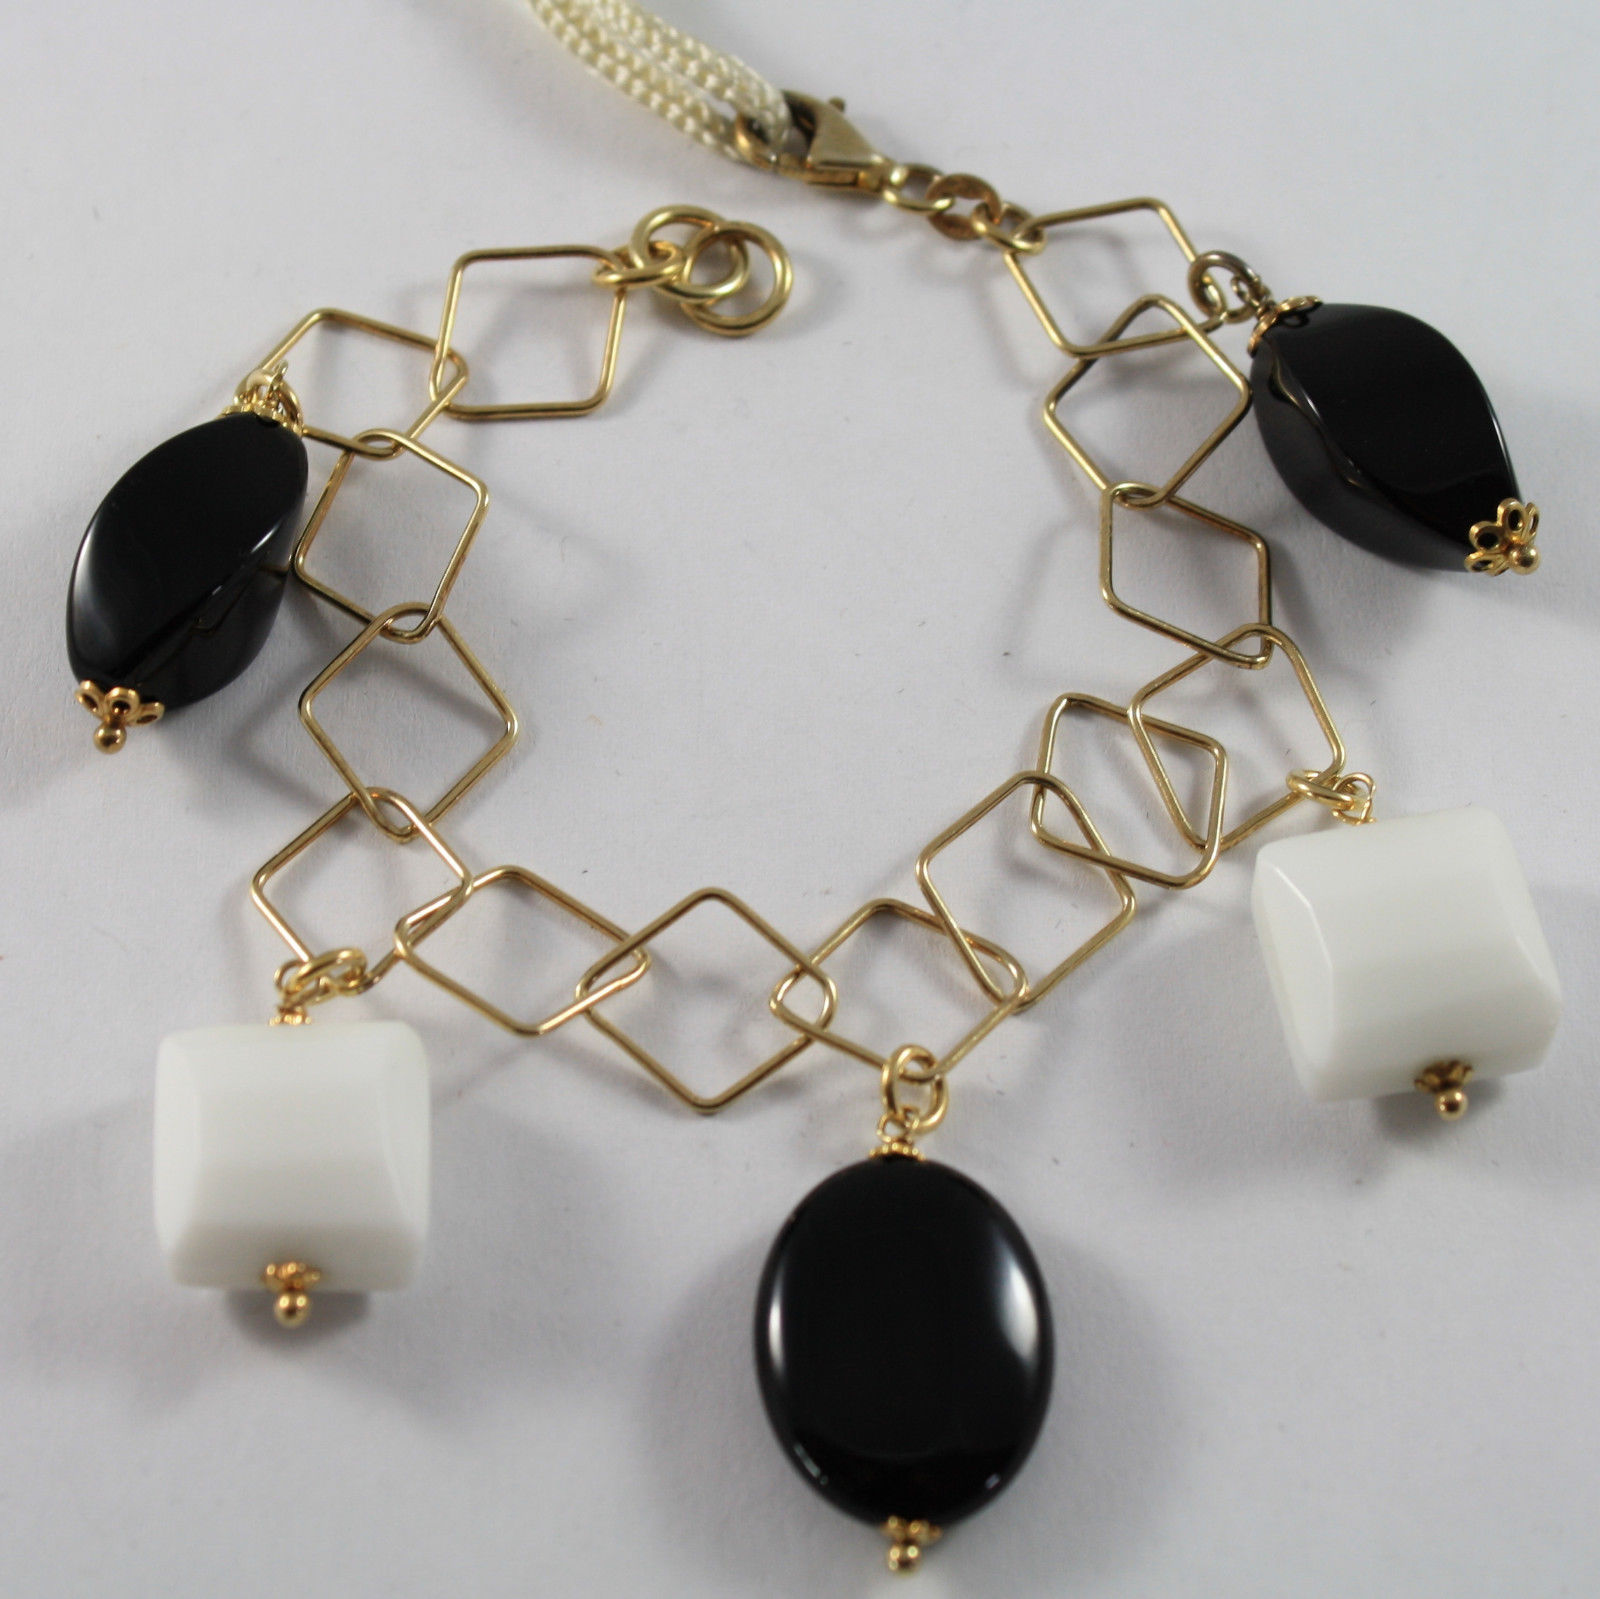 .925 RHODIUM SILVER YELLOW GOLD PLATED BRACELET WITH BLACK ONYX AND WHITE AGATE